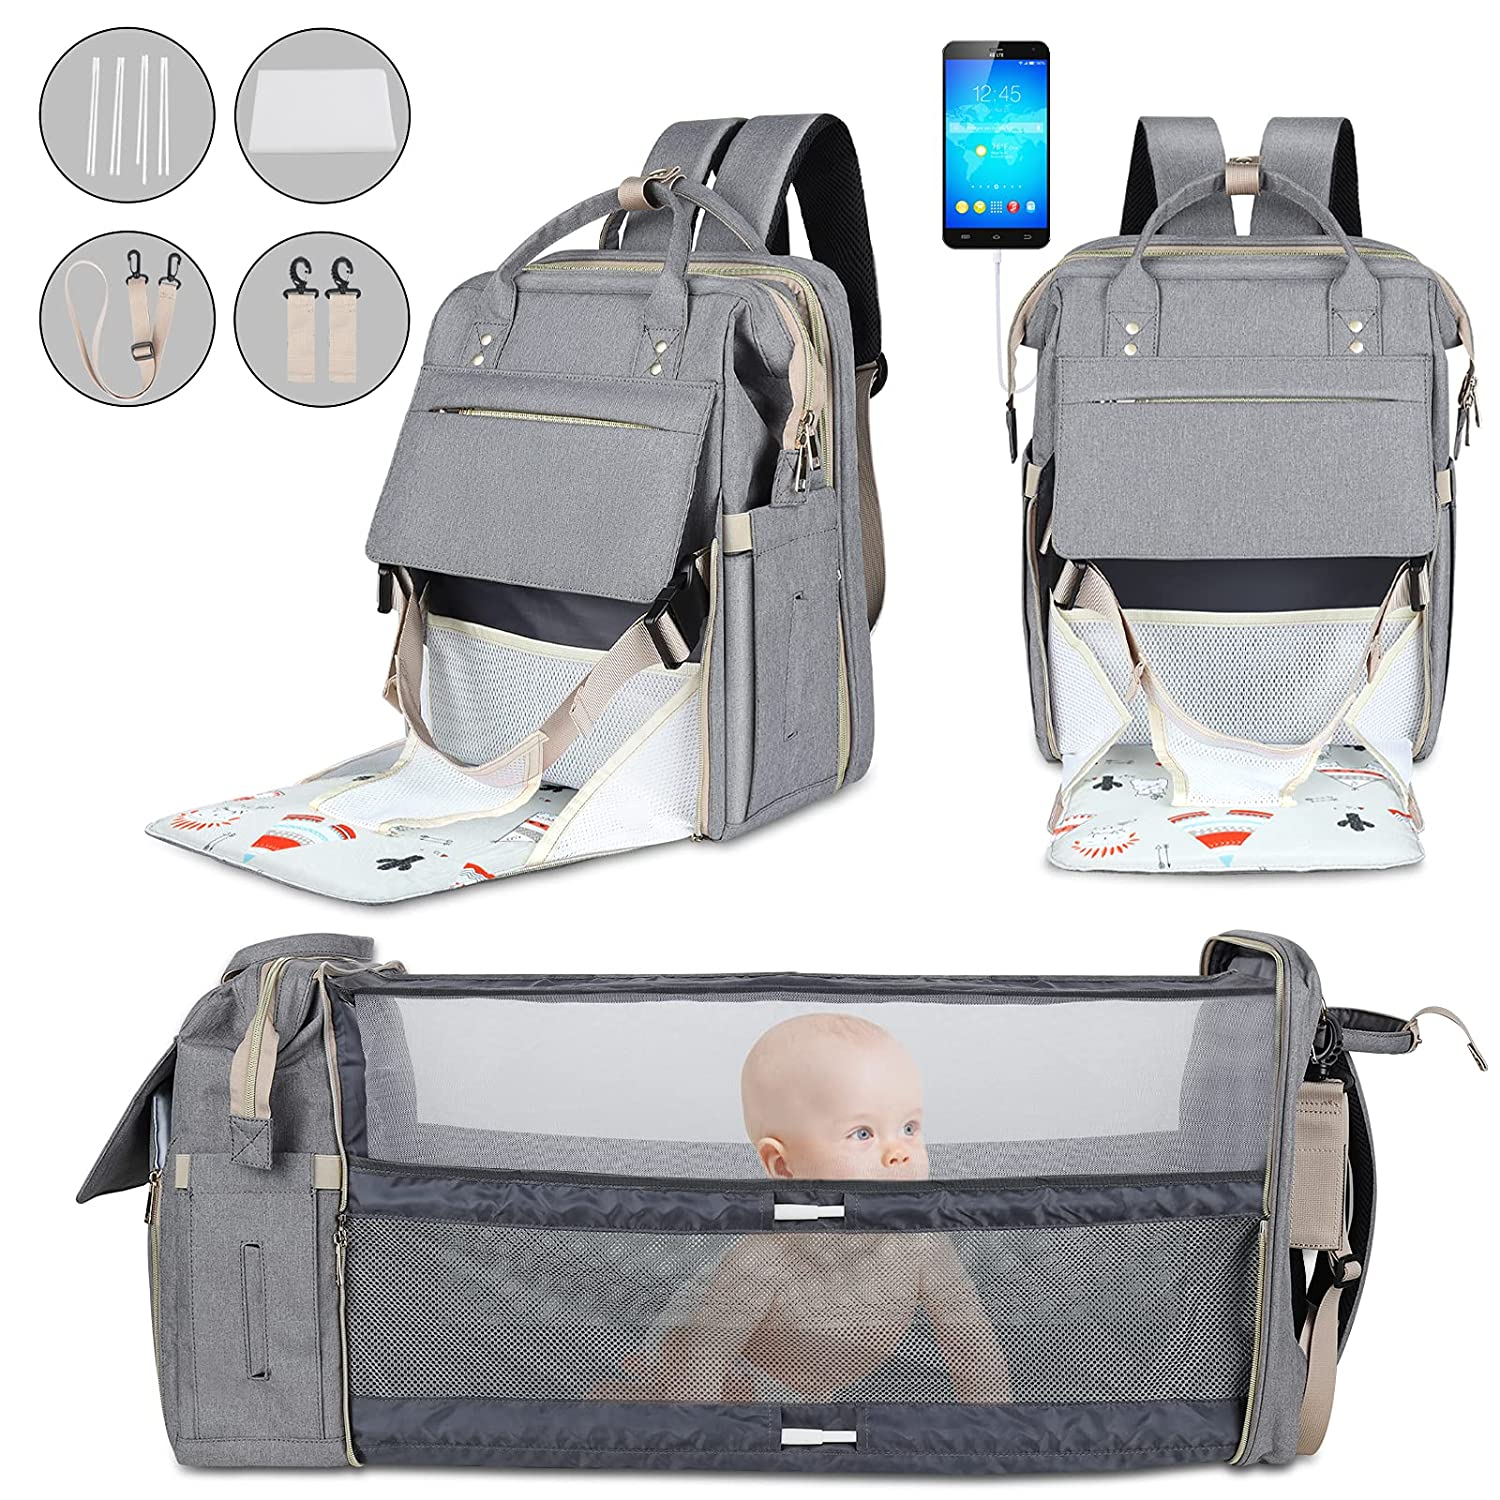 10 in 1 Diaper Bag Backpack with Changing Station, Foldable Crib & Portable Feeding Chair, Baby Registry Search Shower Gifts, Travel Multifunction Large Capacity Bag Bag for Girls and Boys(Grey)